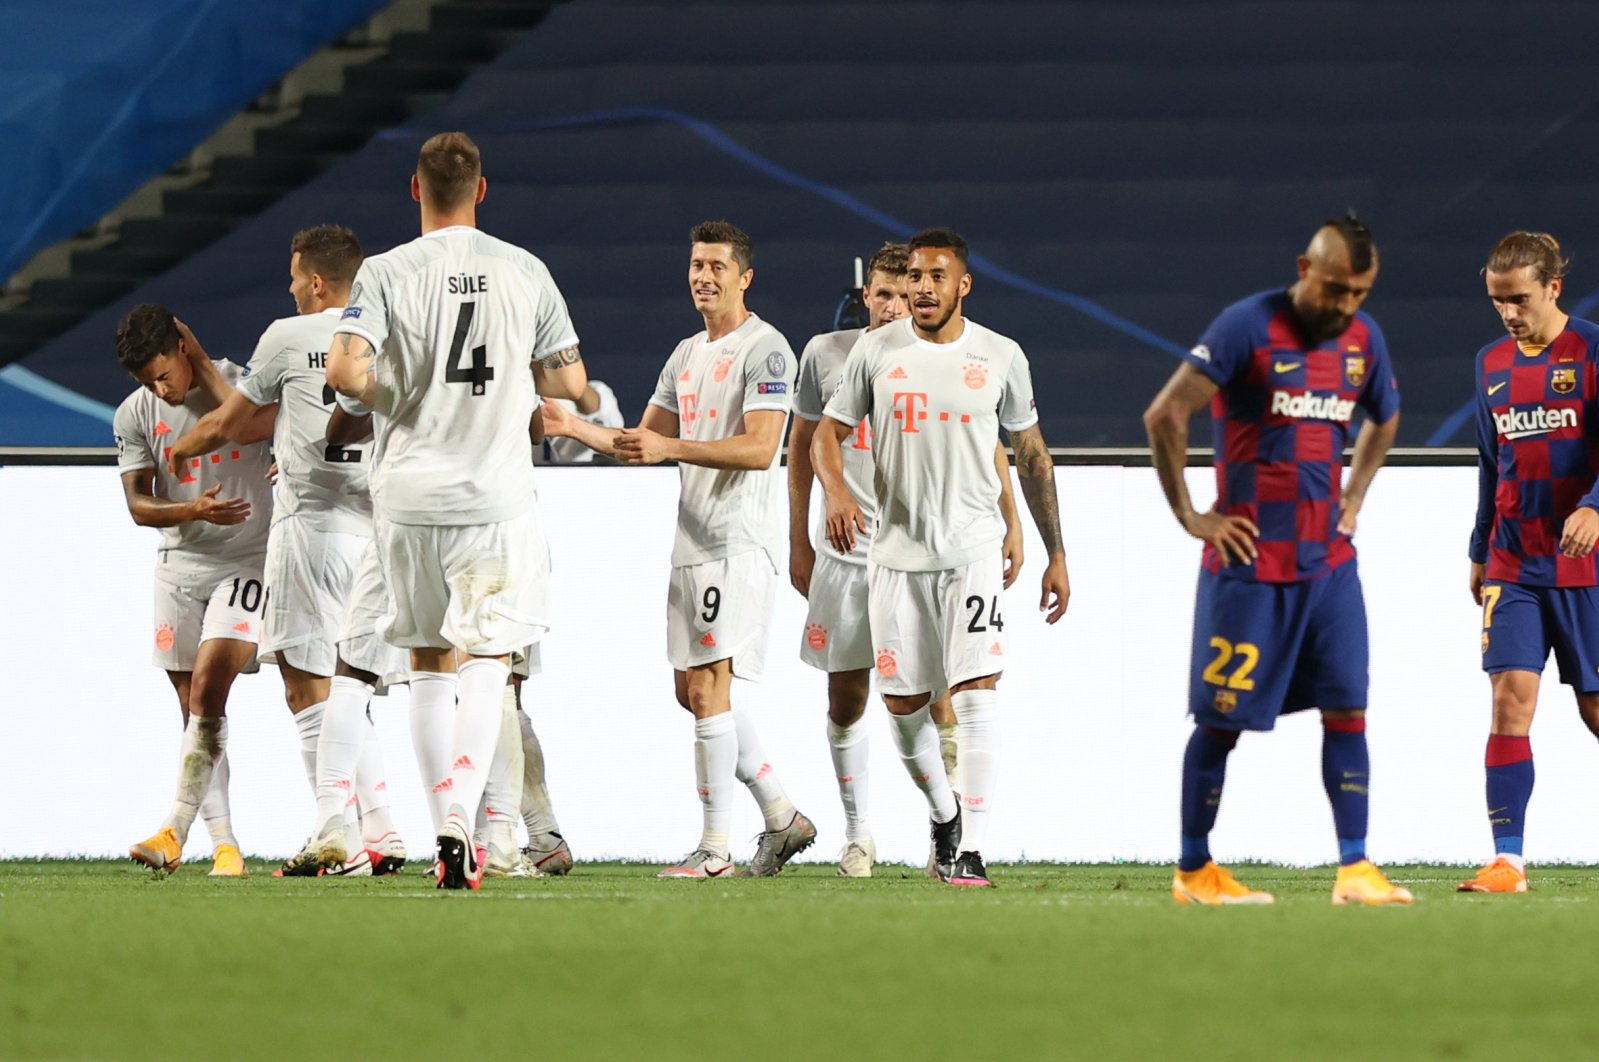 Bayern Munich's Philippe Coutinho celebrates scoring his team's seventh goal with teammates during a Champions League quarterfinal match against Barcelona in Lisbon, Portugal, Aug. 14, 2020. (Reuters Photo)